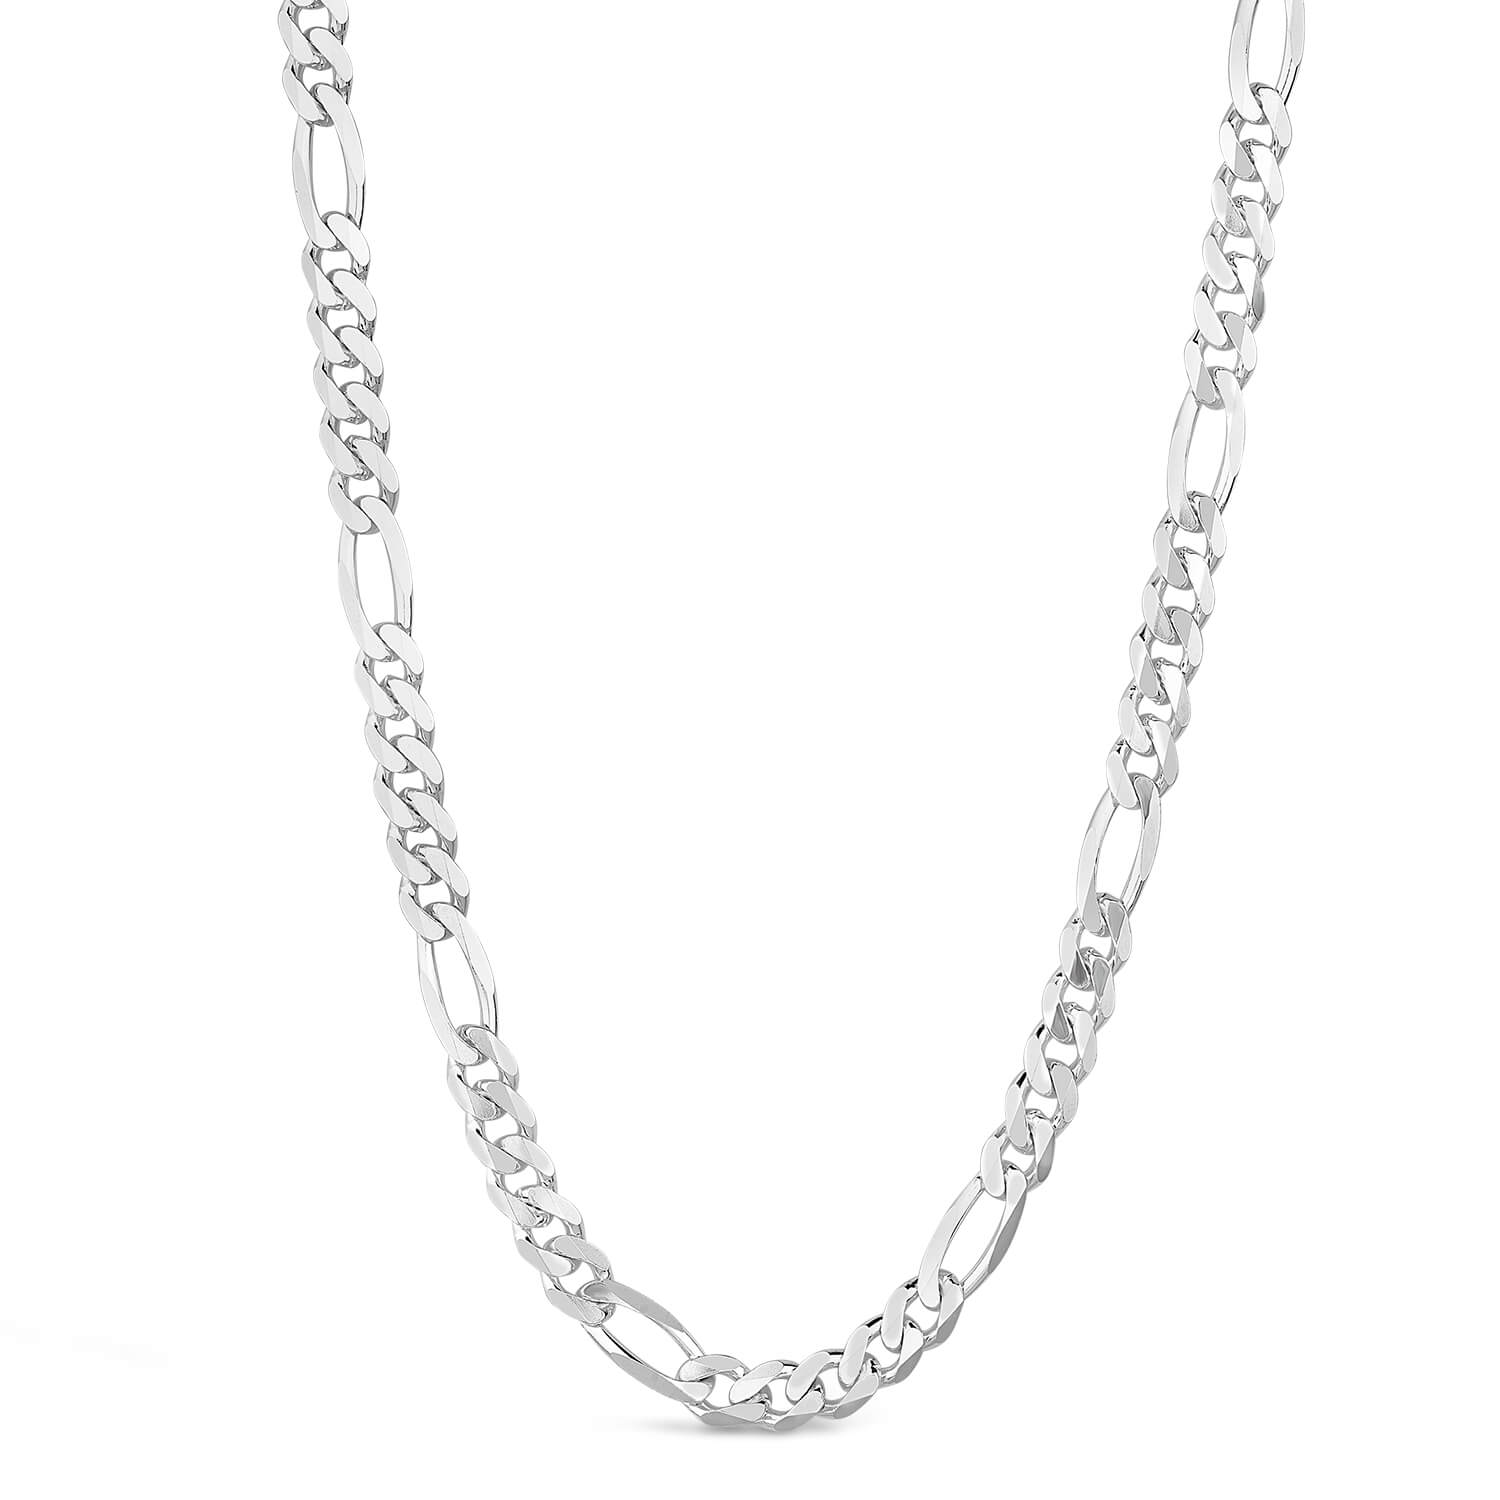 Gents Sterling Silver Necklet